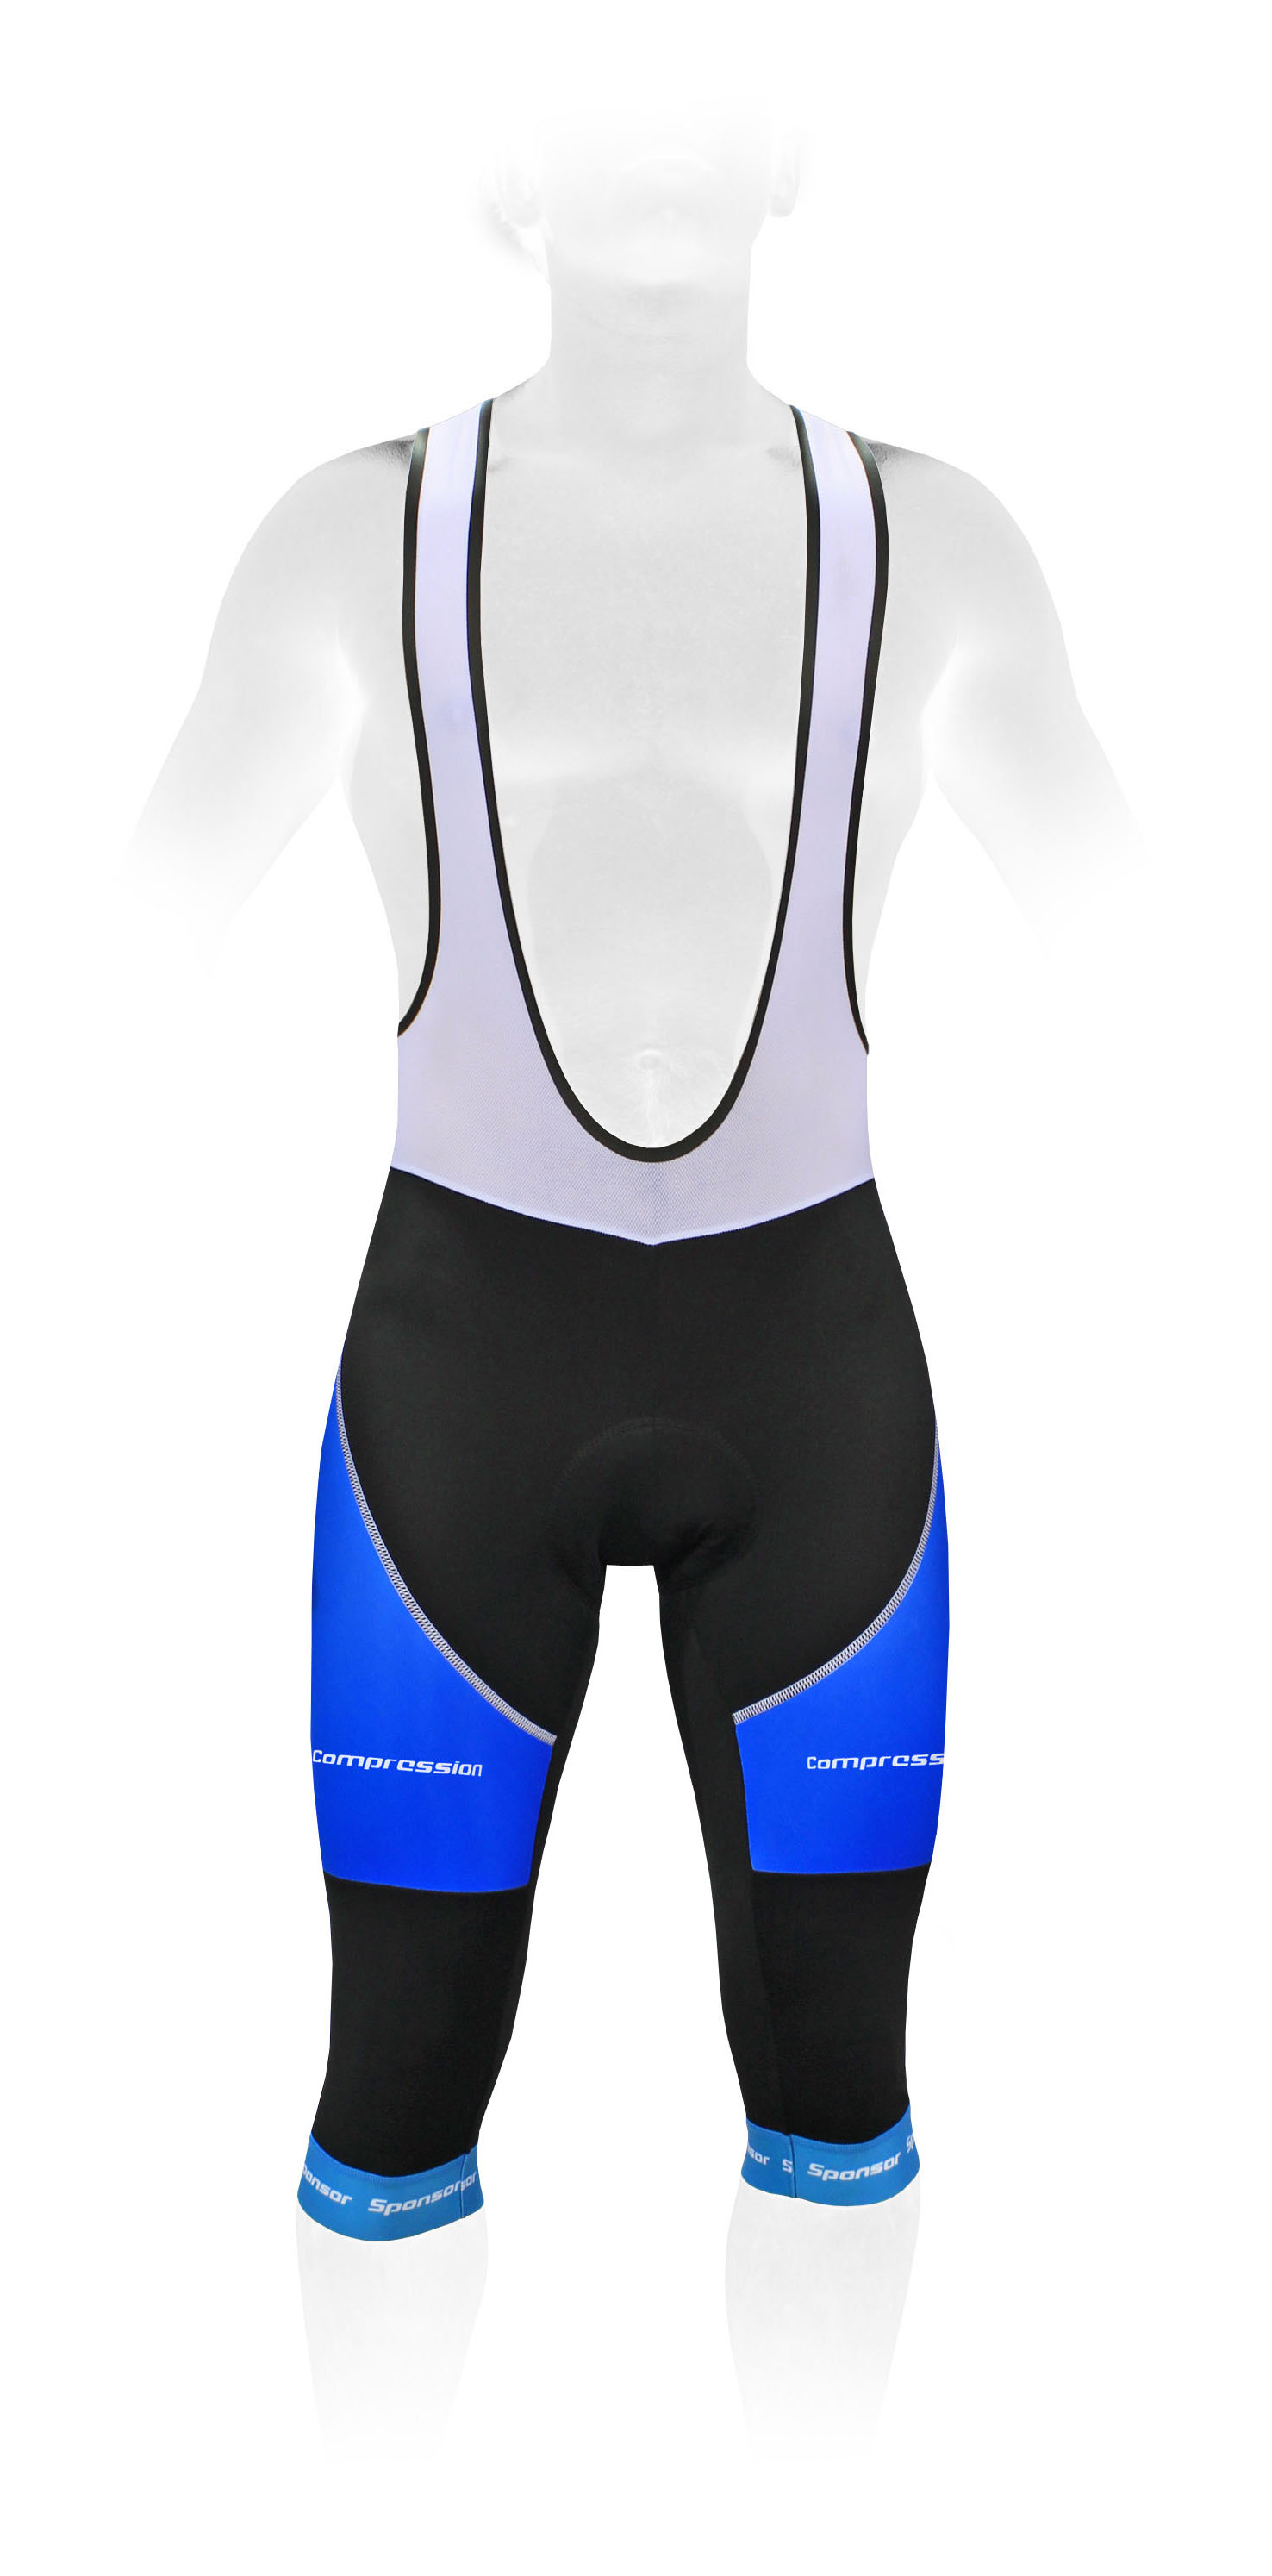 BIB KNICKER COMPRESSION